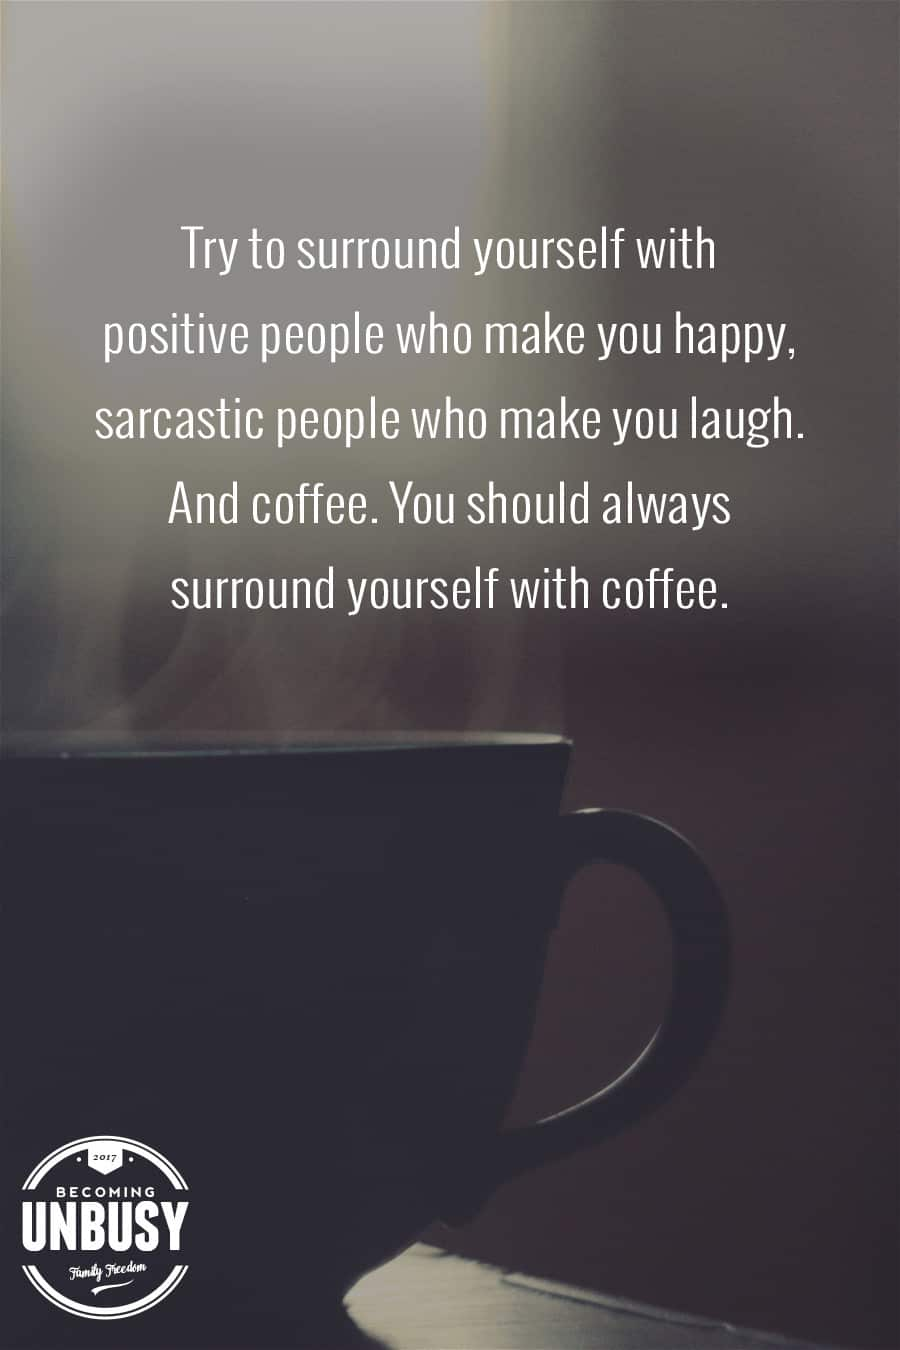 10 Good Morning Quotes - Try to surround yourself with positive people who make you happy, sarcastic people who make you laugh, and coffee. You should always surround yourself with coffee. #lifequotes #quotes #goodmorningquotes #coffeequotes *Start the day off right with these morning inspirational quotes. Love this good morning motivation!